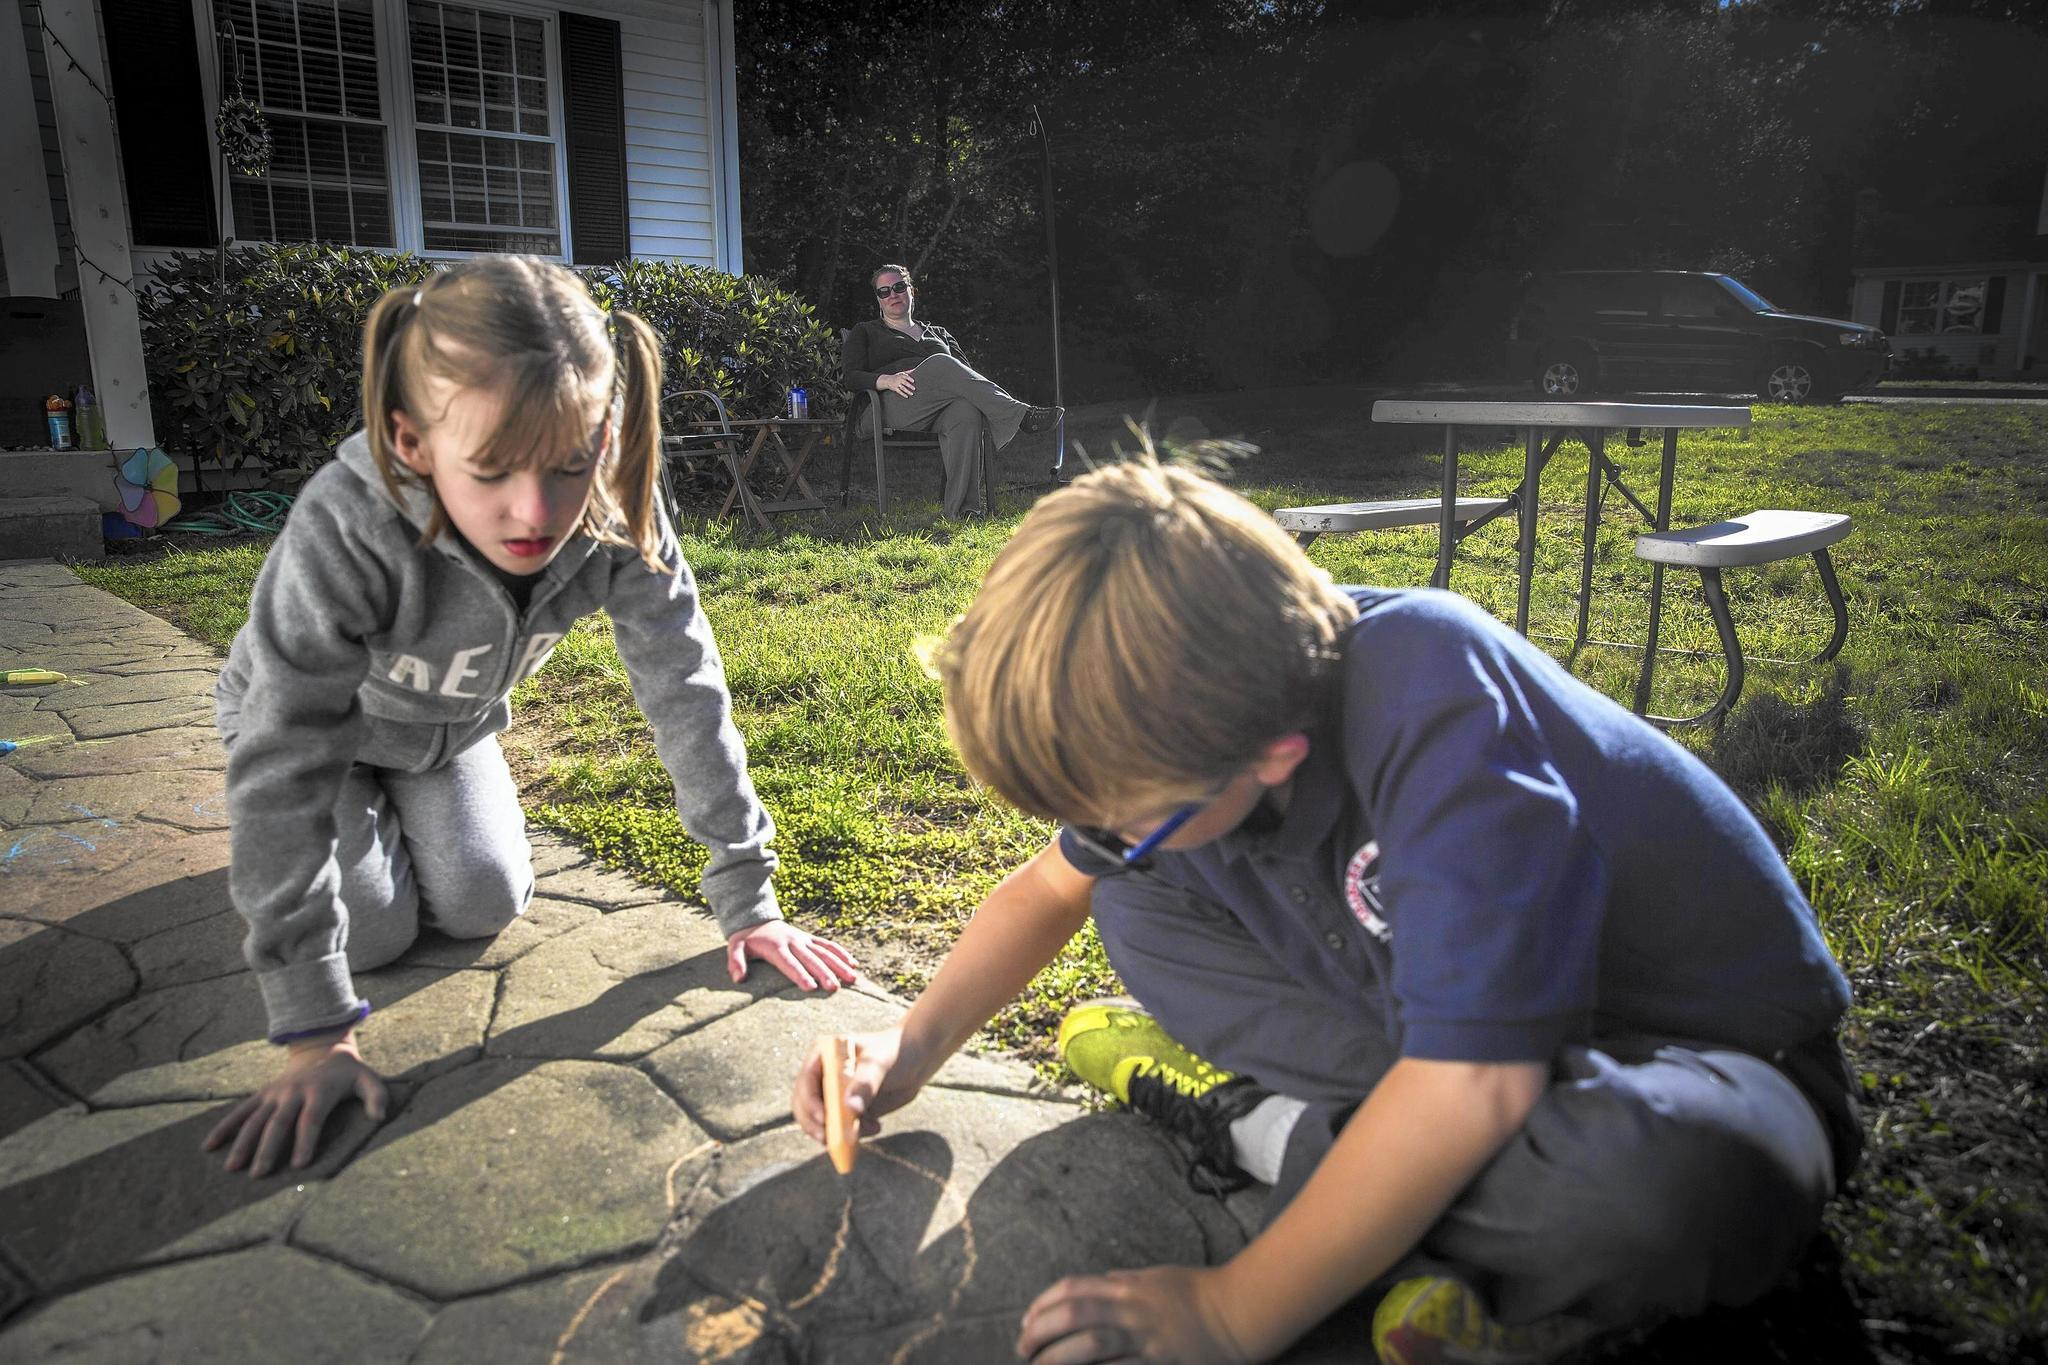 West Tarricone and her brother, Blake play with chalk in front of their house in North Windham while their mom watches in the background on Oct. 11, 2016. The twins are very close, though Blake does not suffer from epilepsy. Blake usually plays with West when he comes home from school. West attends school for a few hours when she is feeling up to it, but on many days her seizures cause her to stay home.